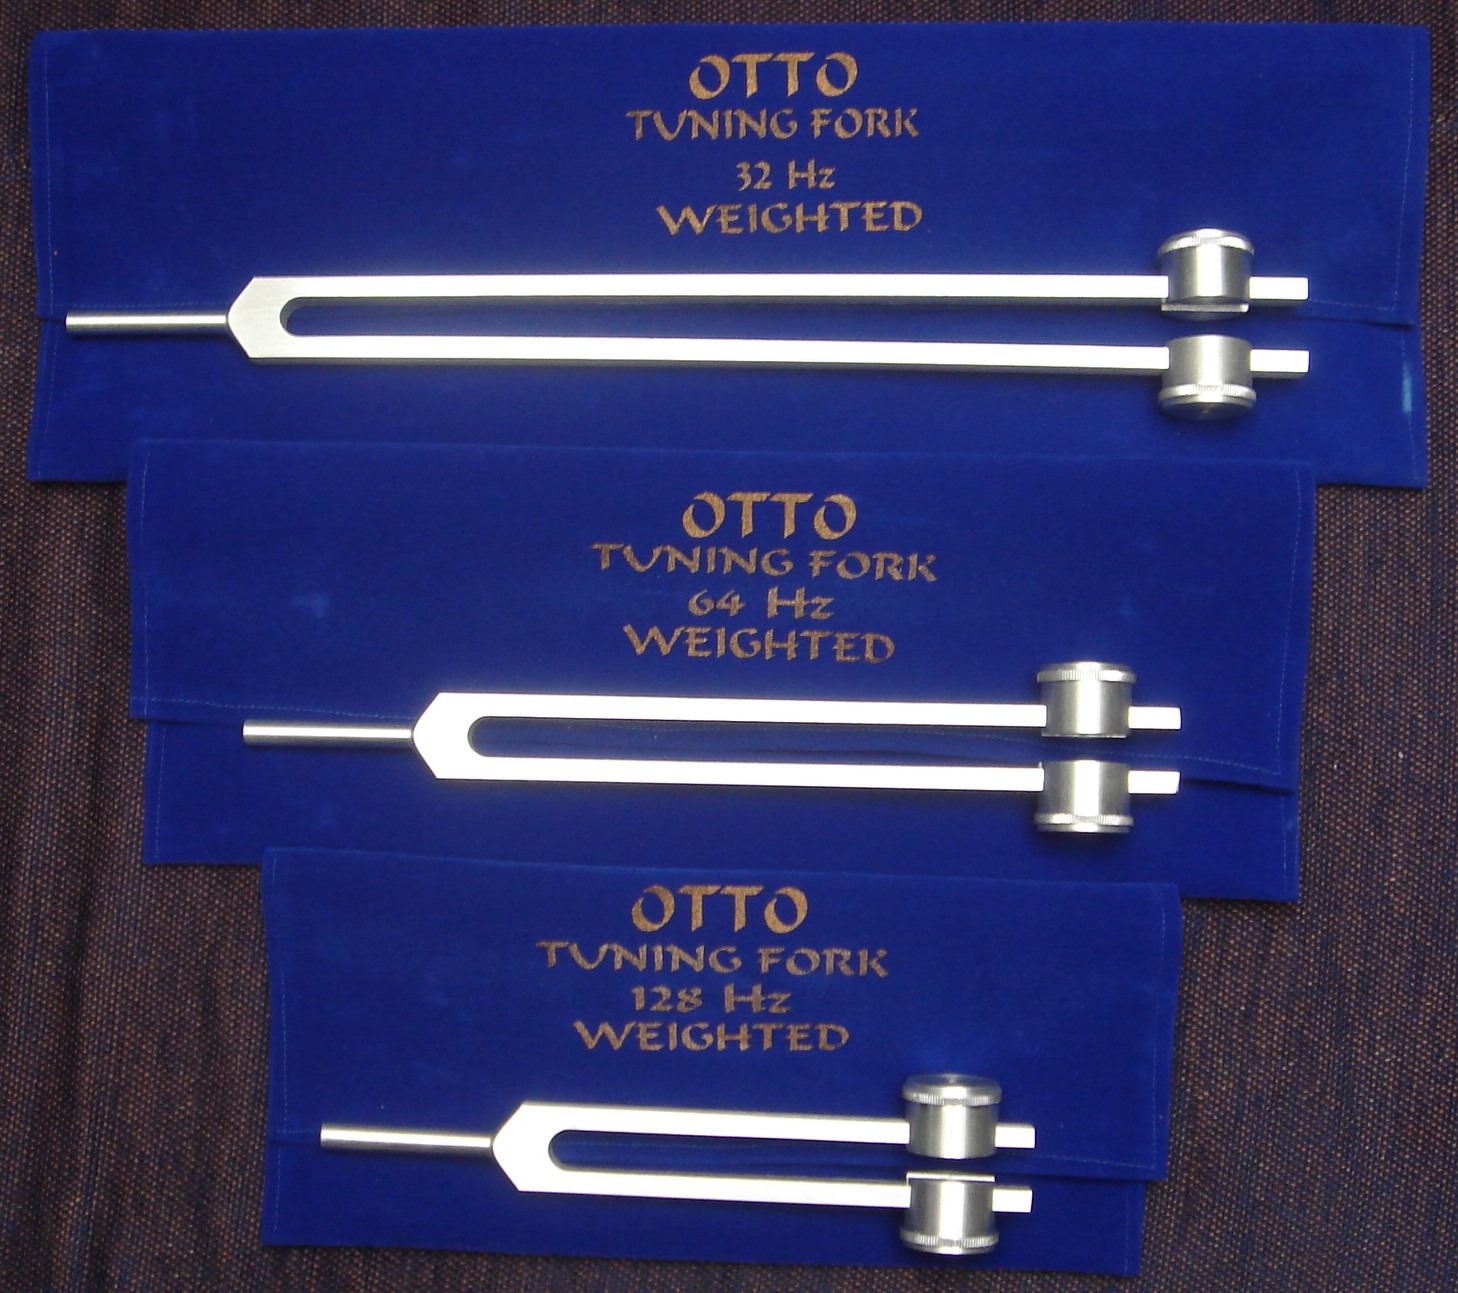 OTTO_TUNING_FORK